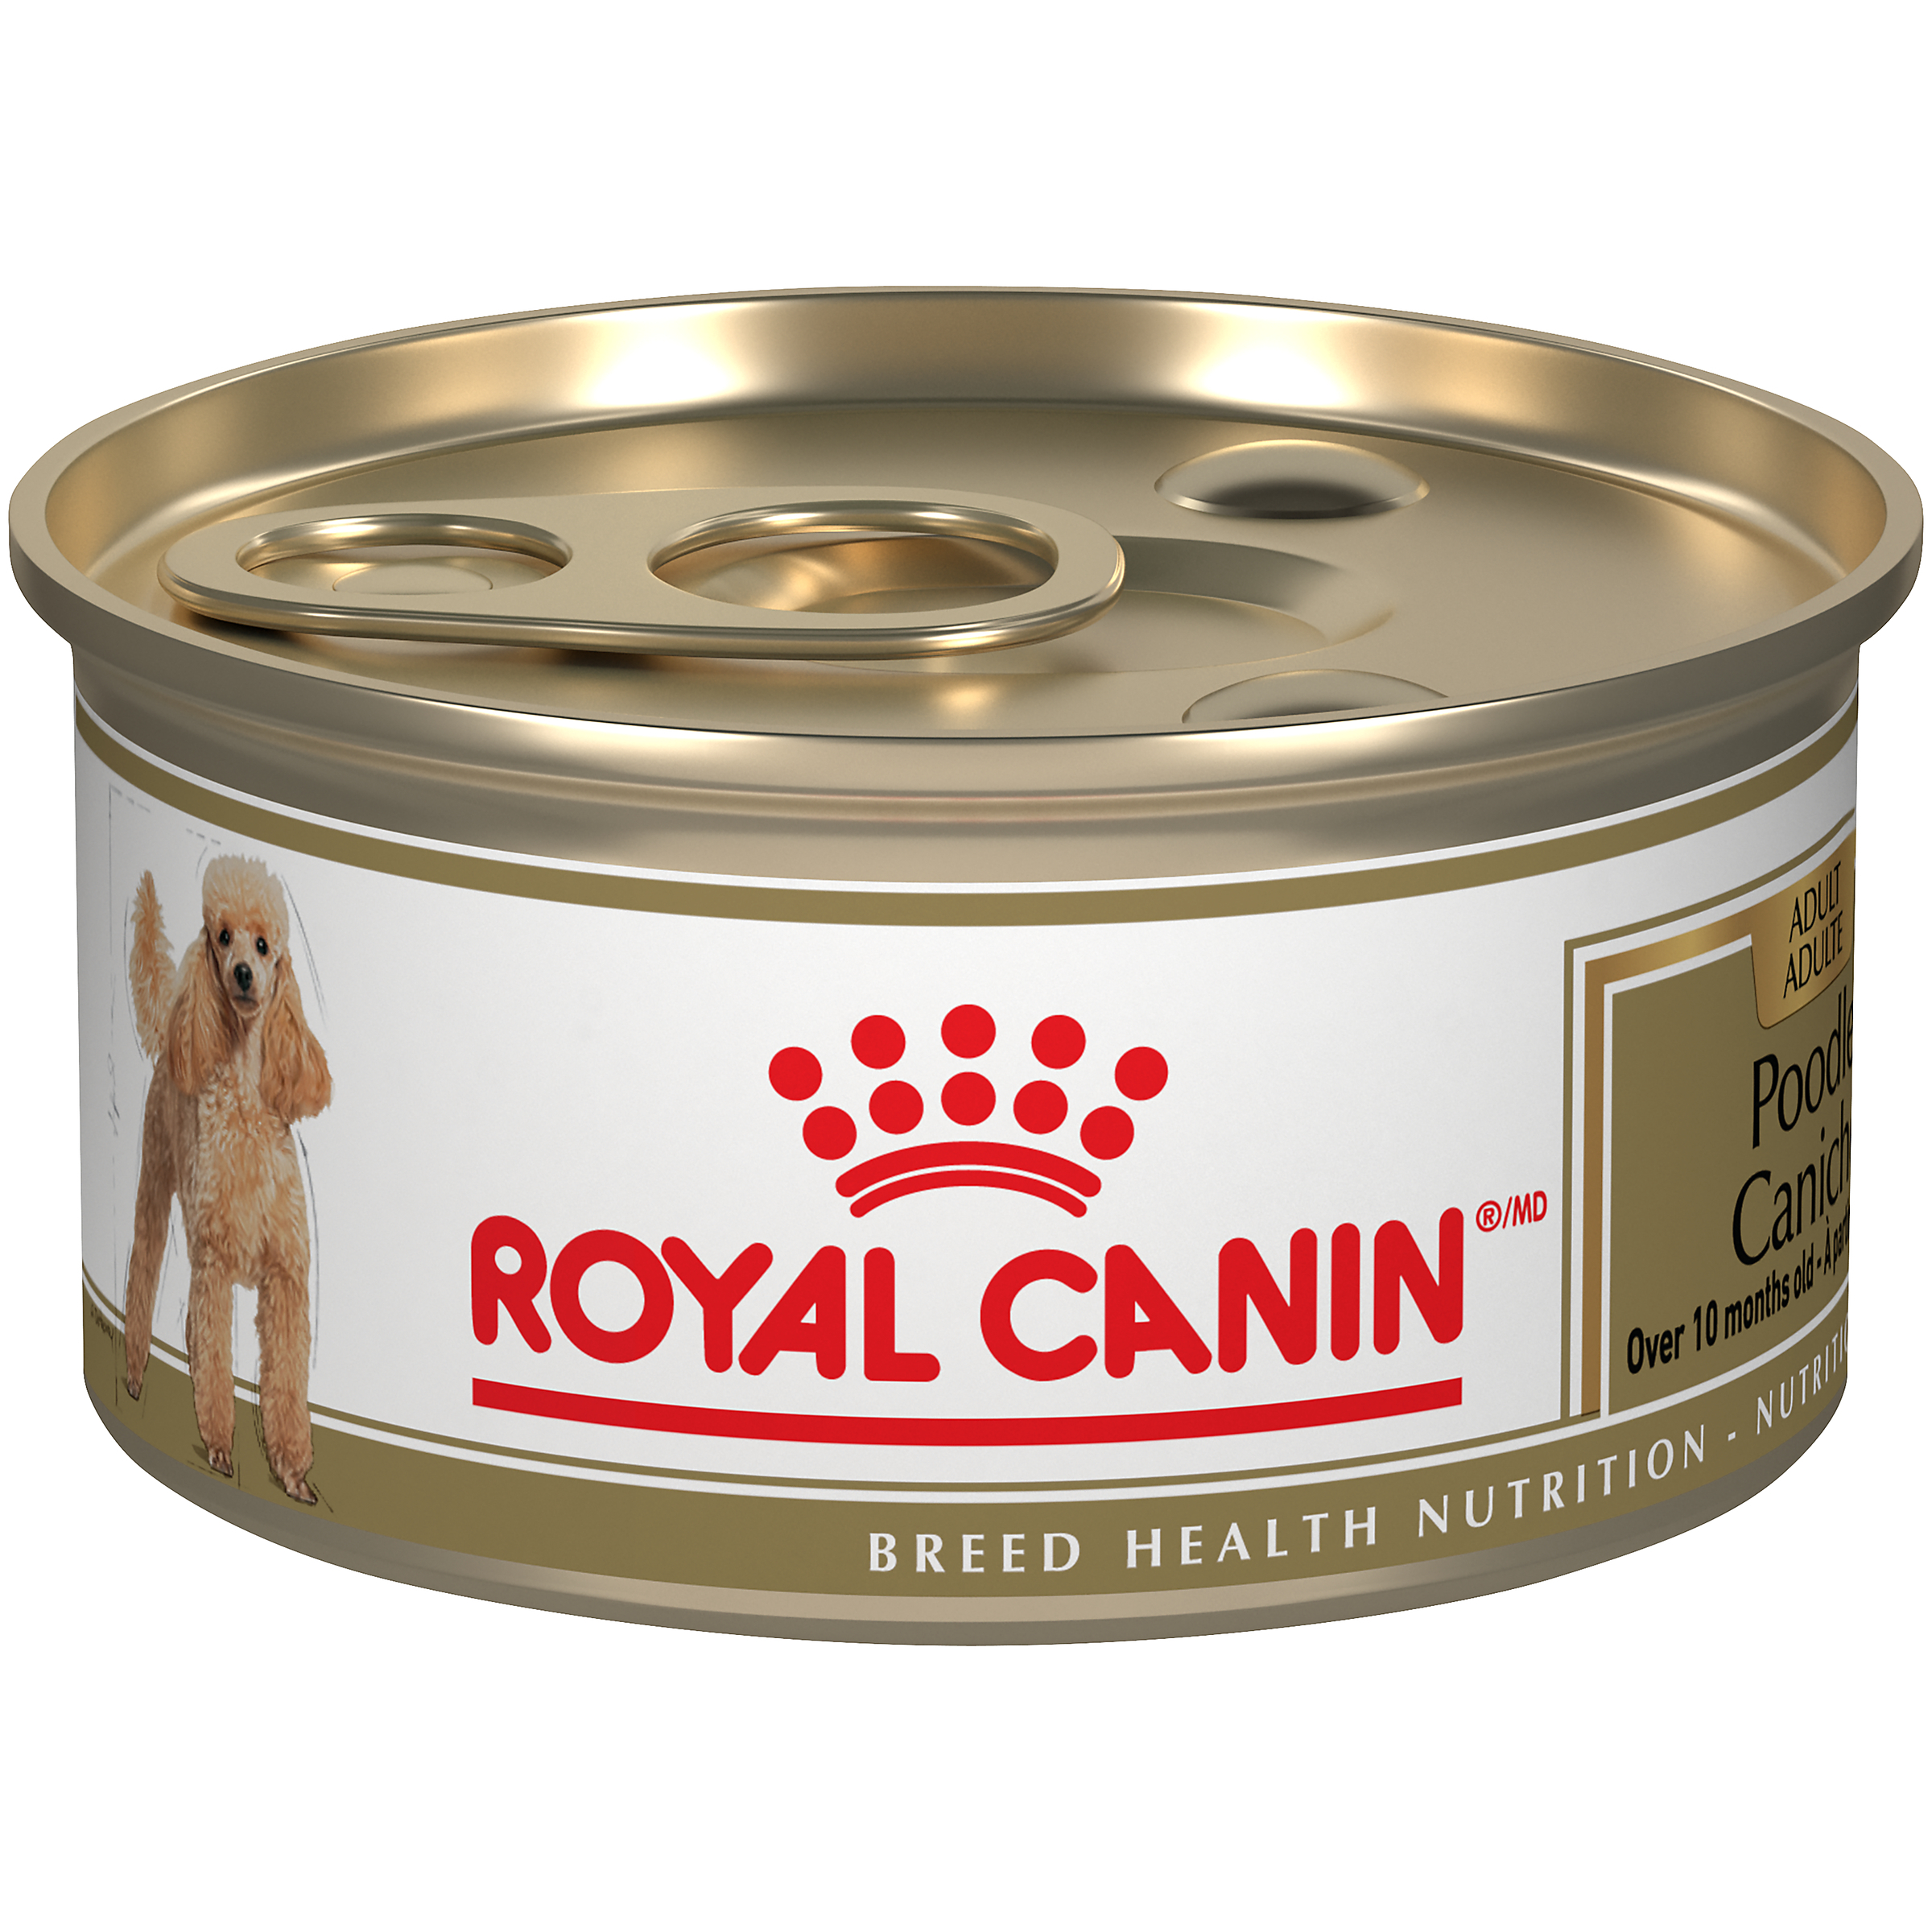 Royal Canin Breed Health Nutrition Poodle Loaf In Sauce Dog Food